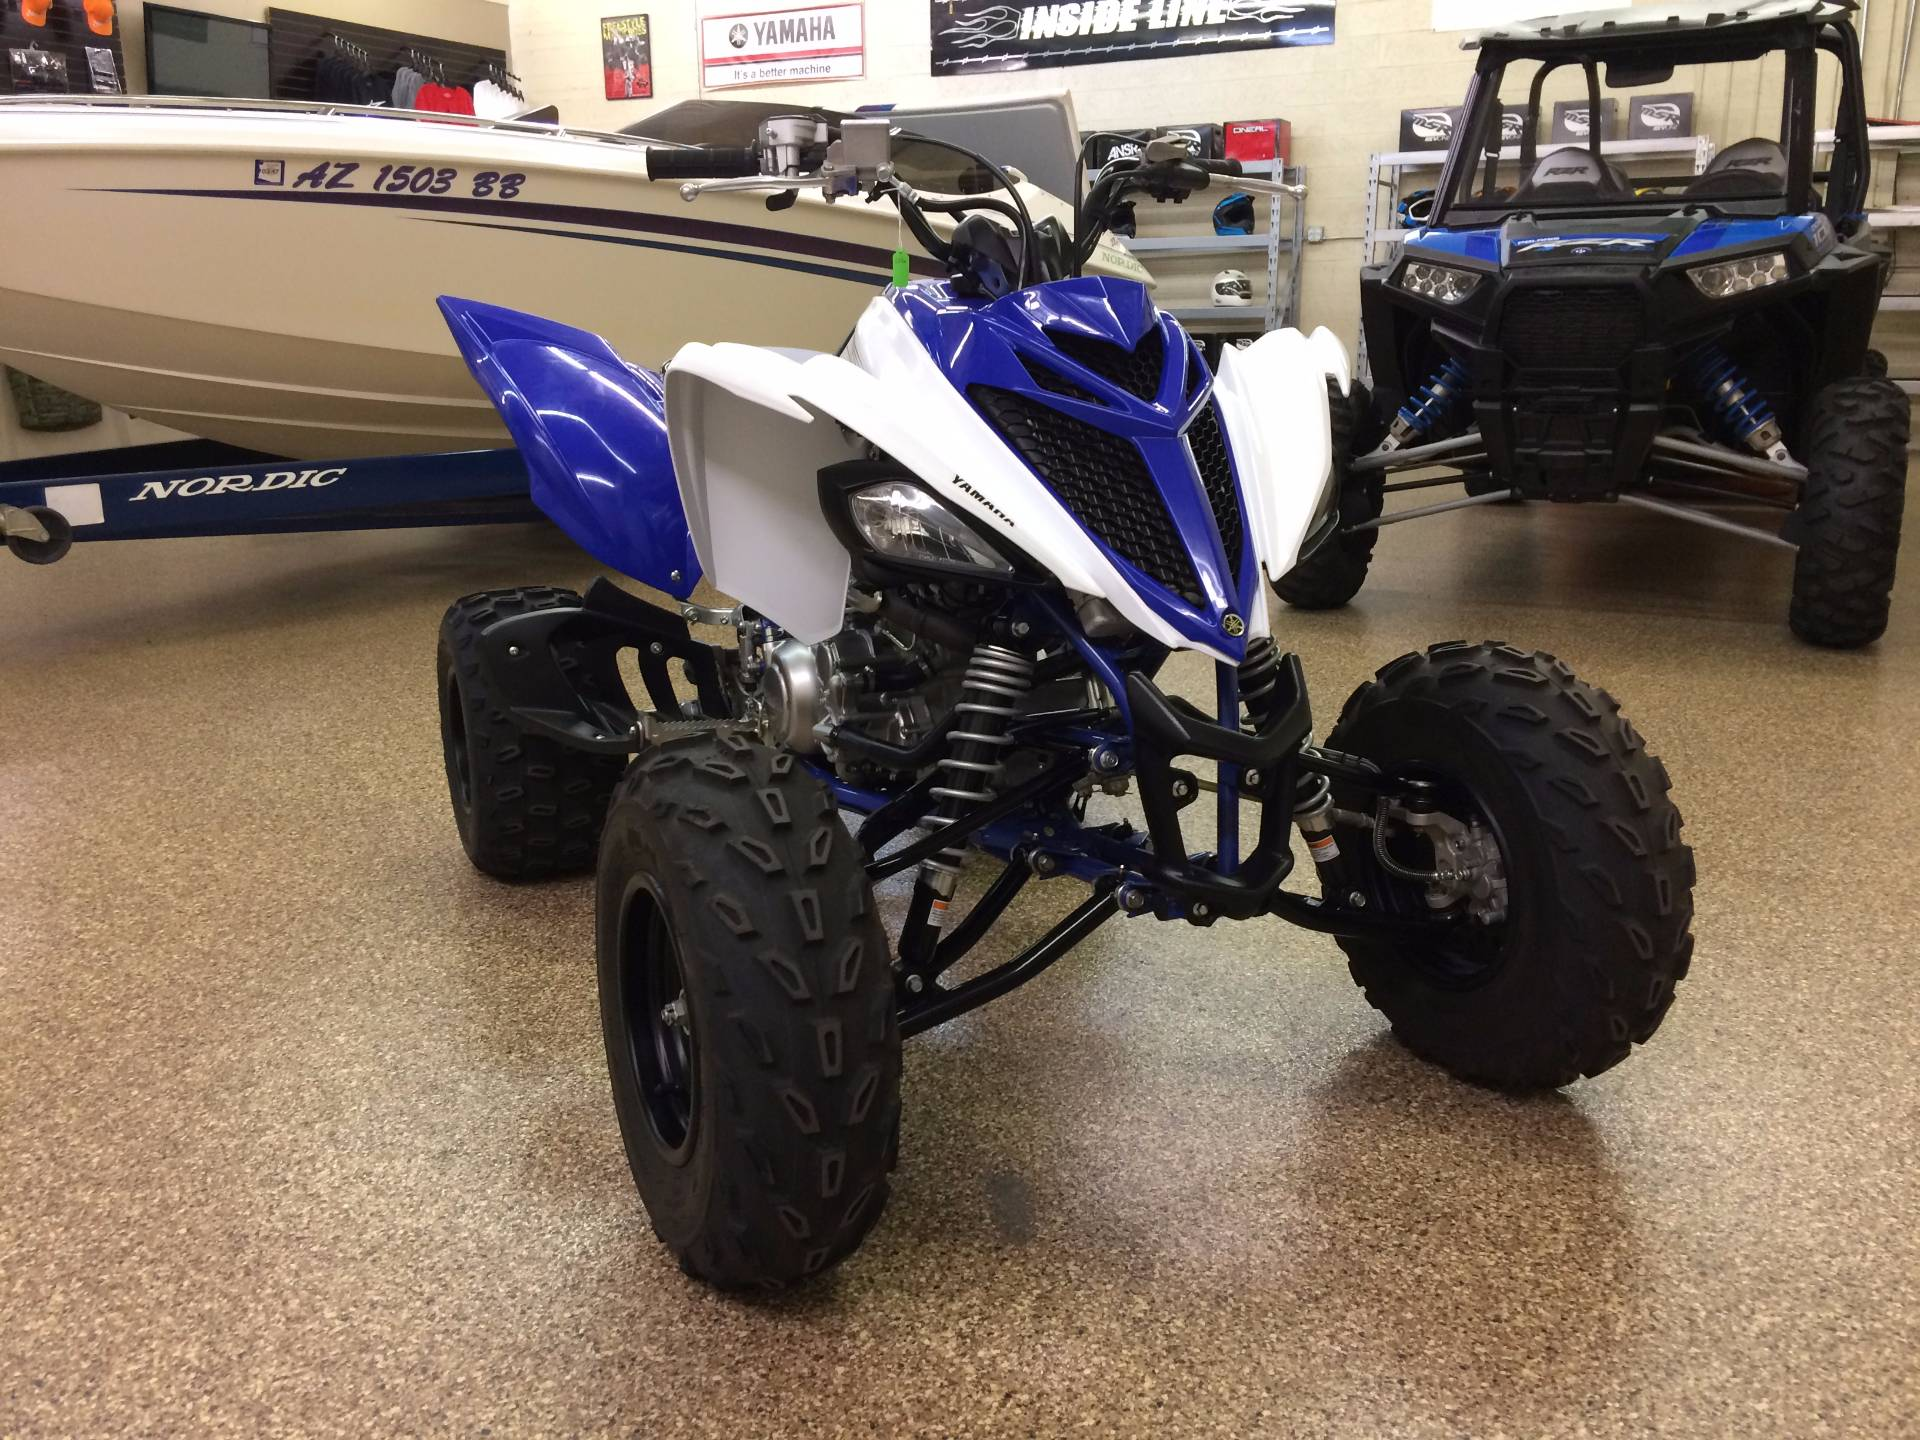 2016 Yamaha Raptor 700 in Phoenix, Arizona